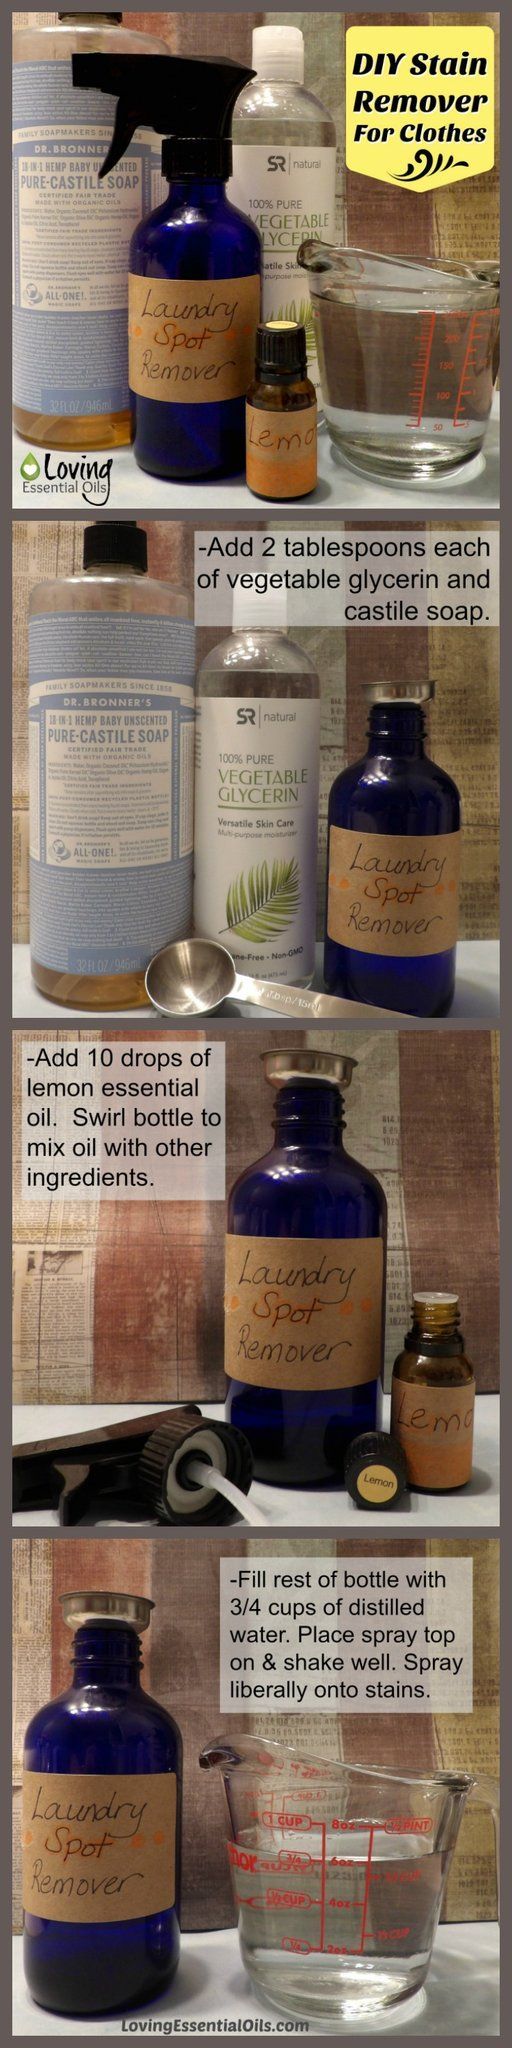 DIY Stain Remover For Clothes Tutorial.  Easy to make, need lemon essential oil, Castile soap, vegetable glycerin and water. Read more here: http://www.lovingessentialoils.com/blogs/diy-recipes/diy-stain-remover-for-clothes